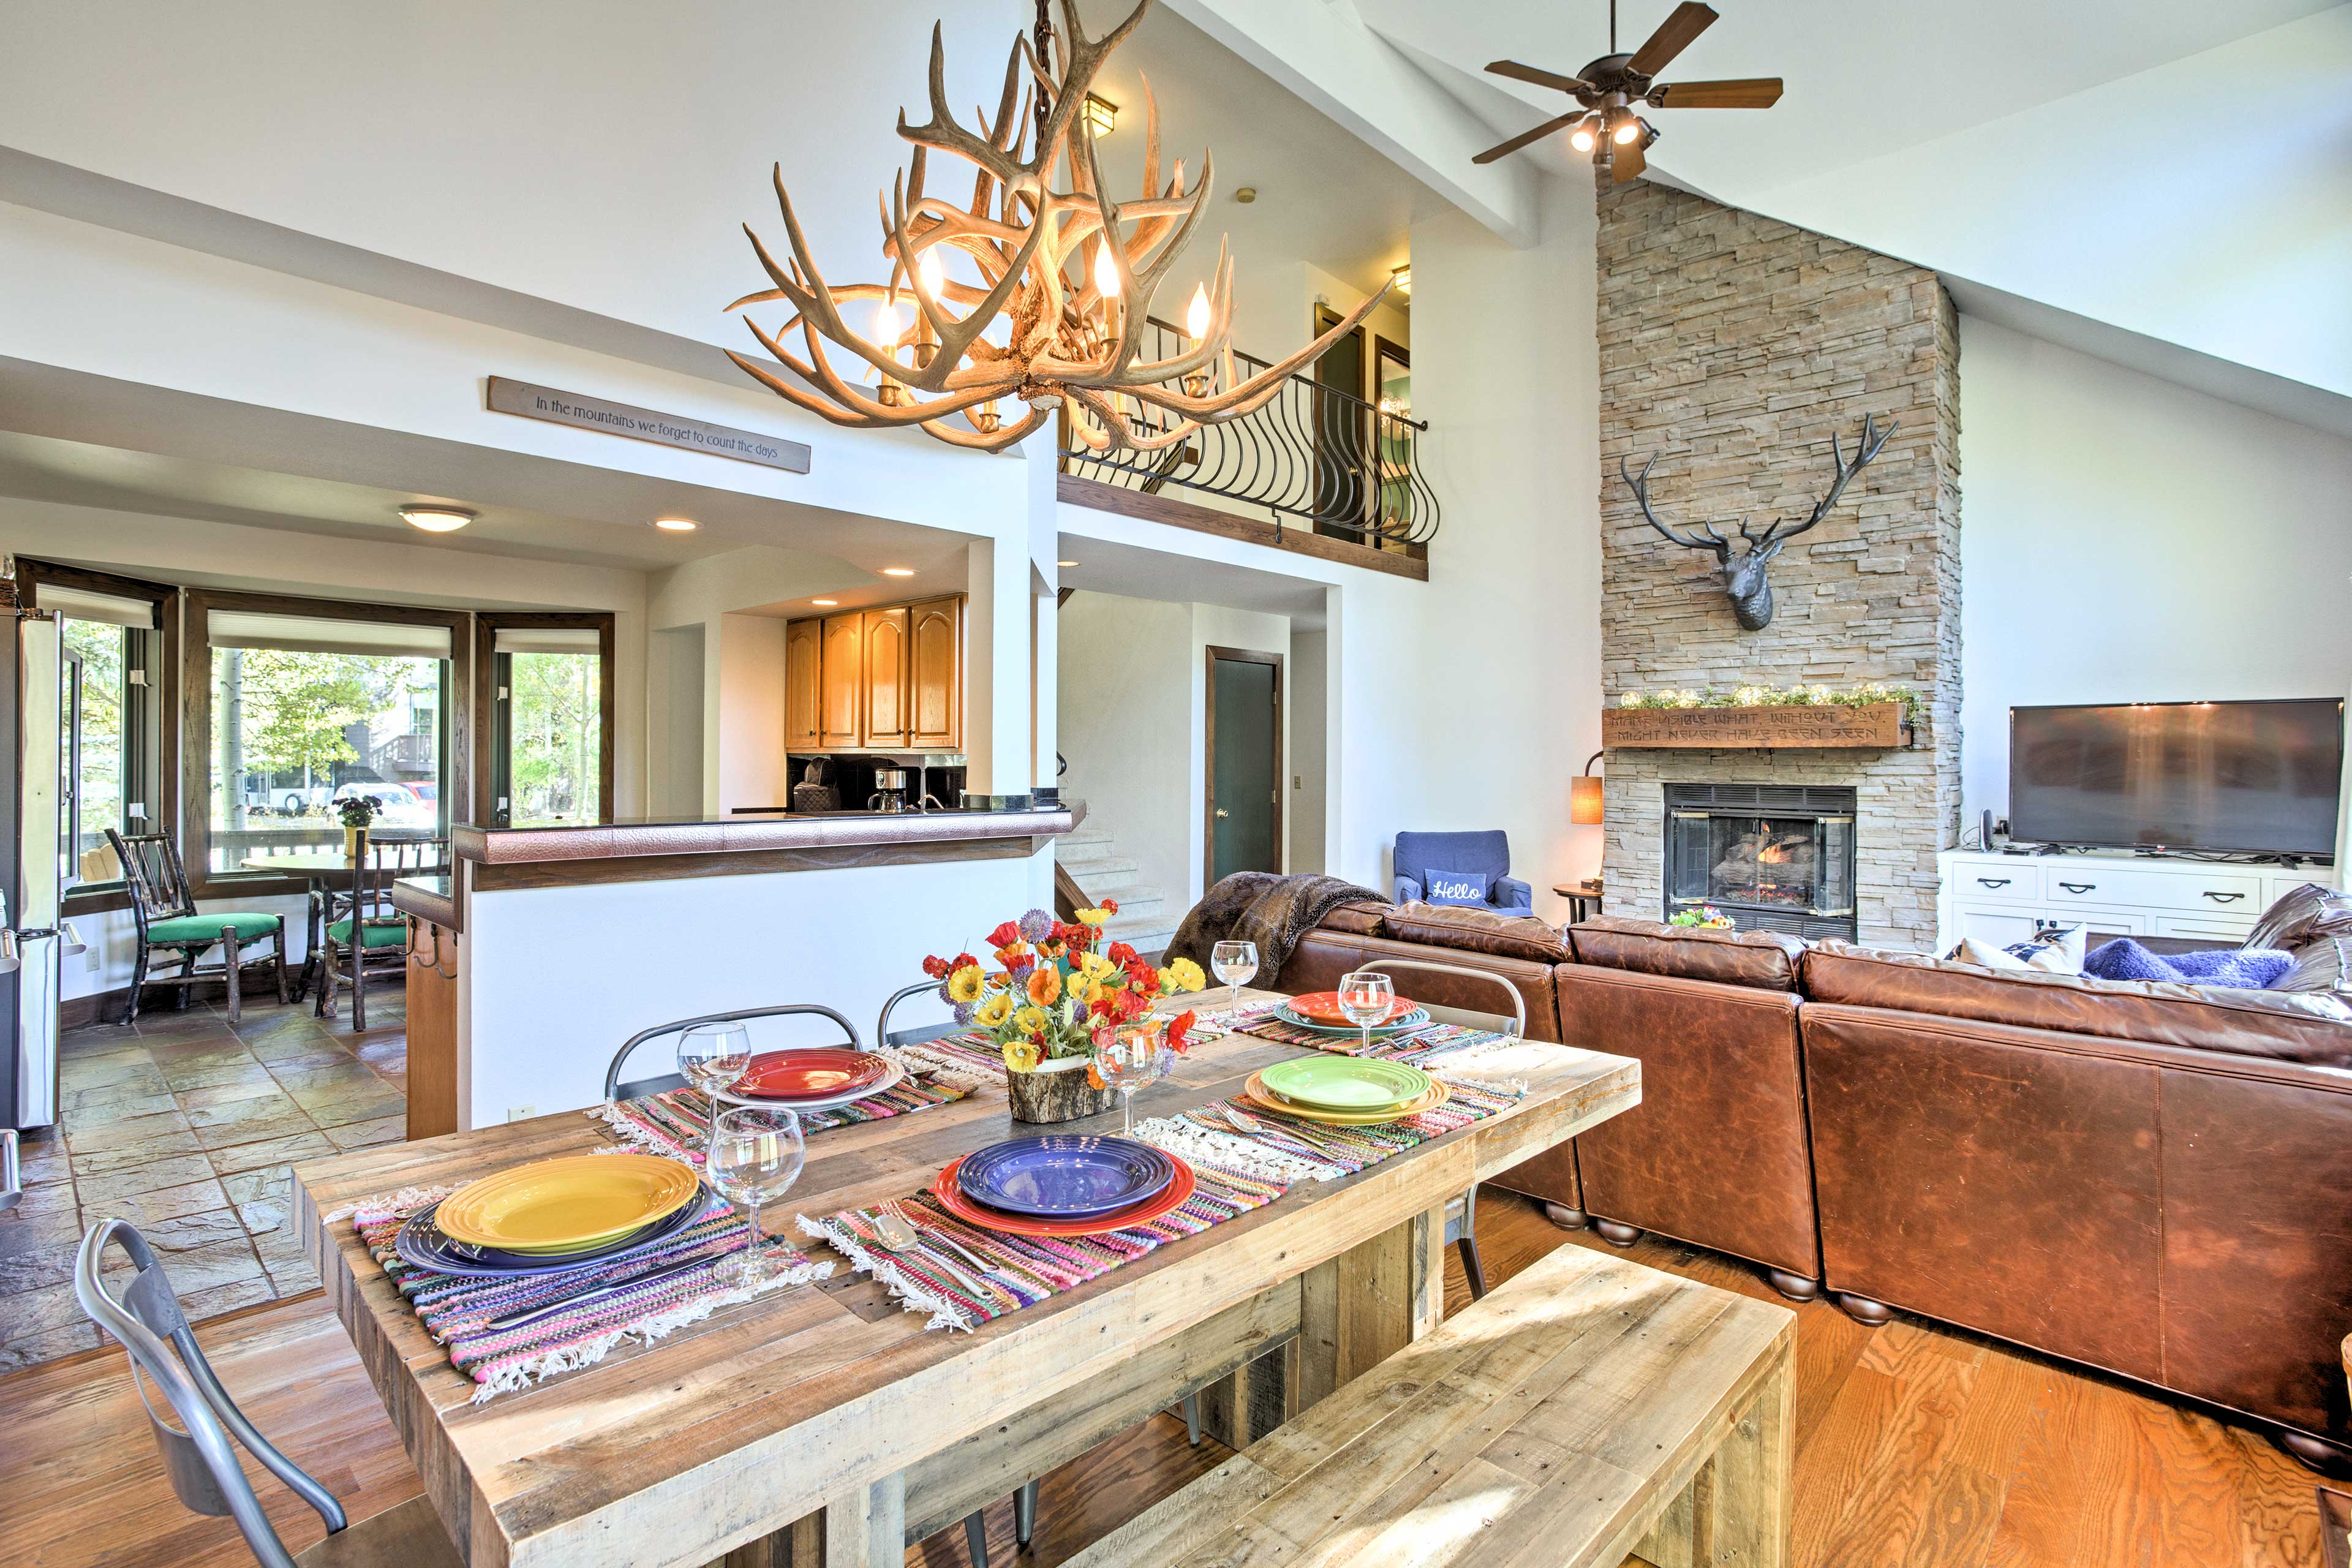 Inside, the beautiful home features vaulted ceilings and tasteful decor.